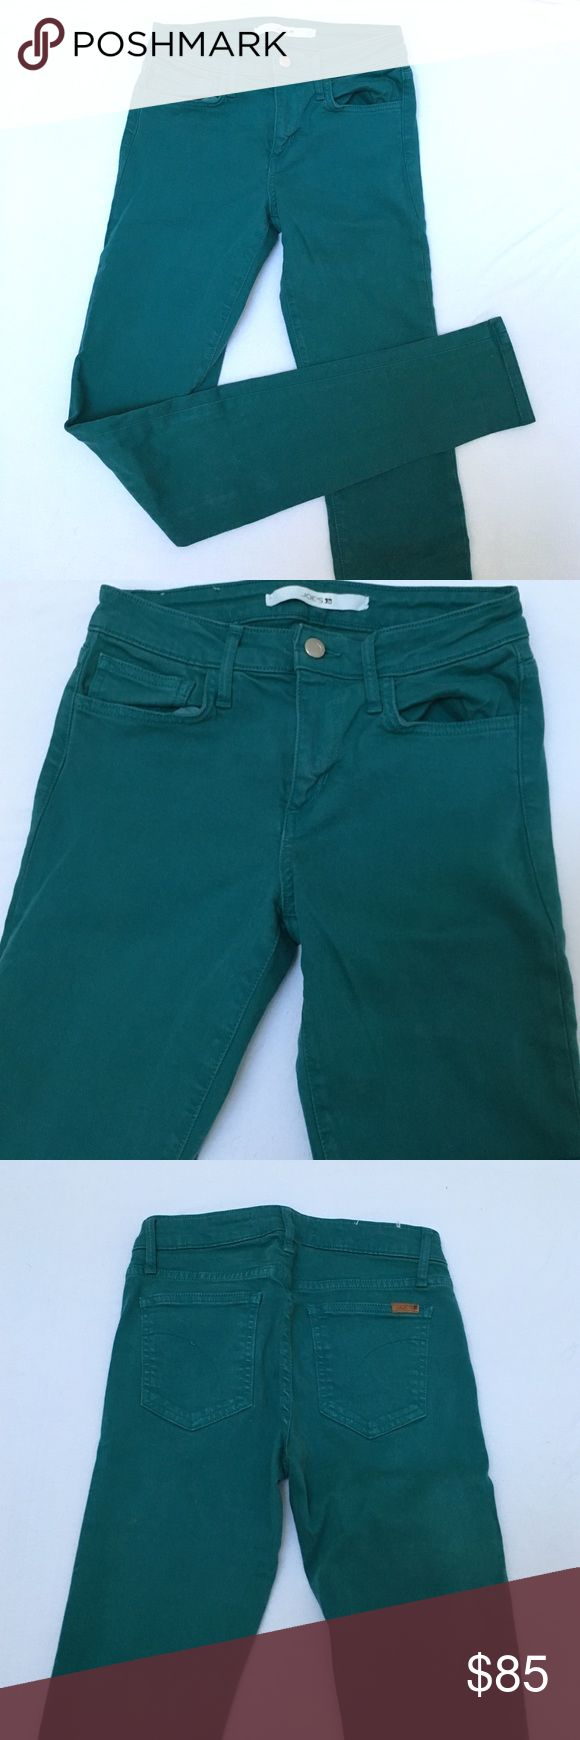 "Joes high rise jeans Like new!! Stretchy, comfortable turquoise jeans.  33"" inseam (long) but can be cuffed or hemmed for a shorter or cropped fit! Joe's Jeans Jeans"